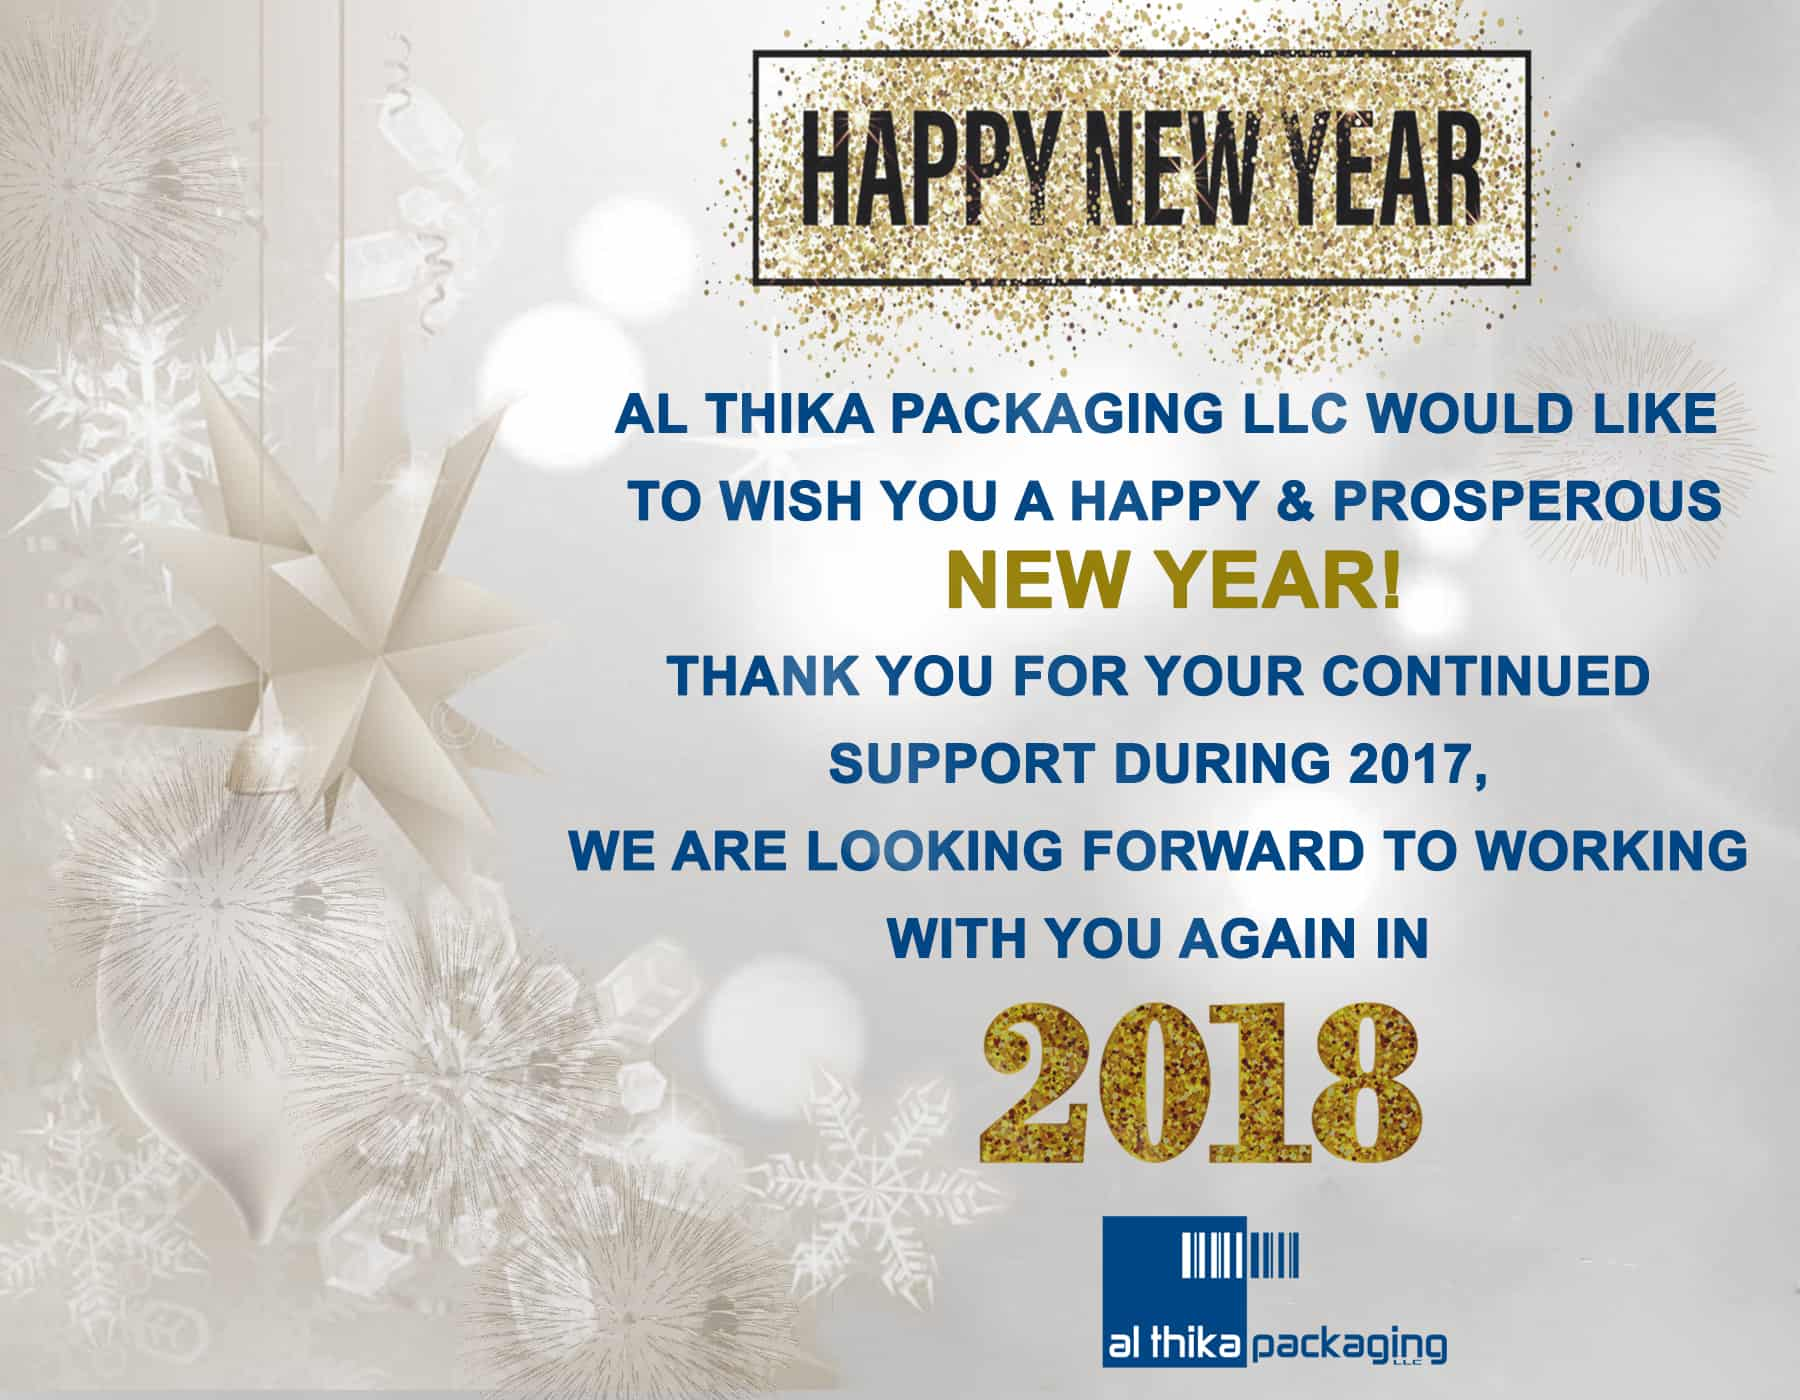 New year greeting, New year 2018,happy new year,Al Thika Packaging,2018,packaging